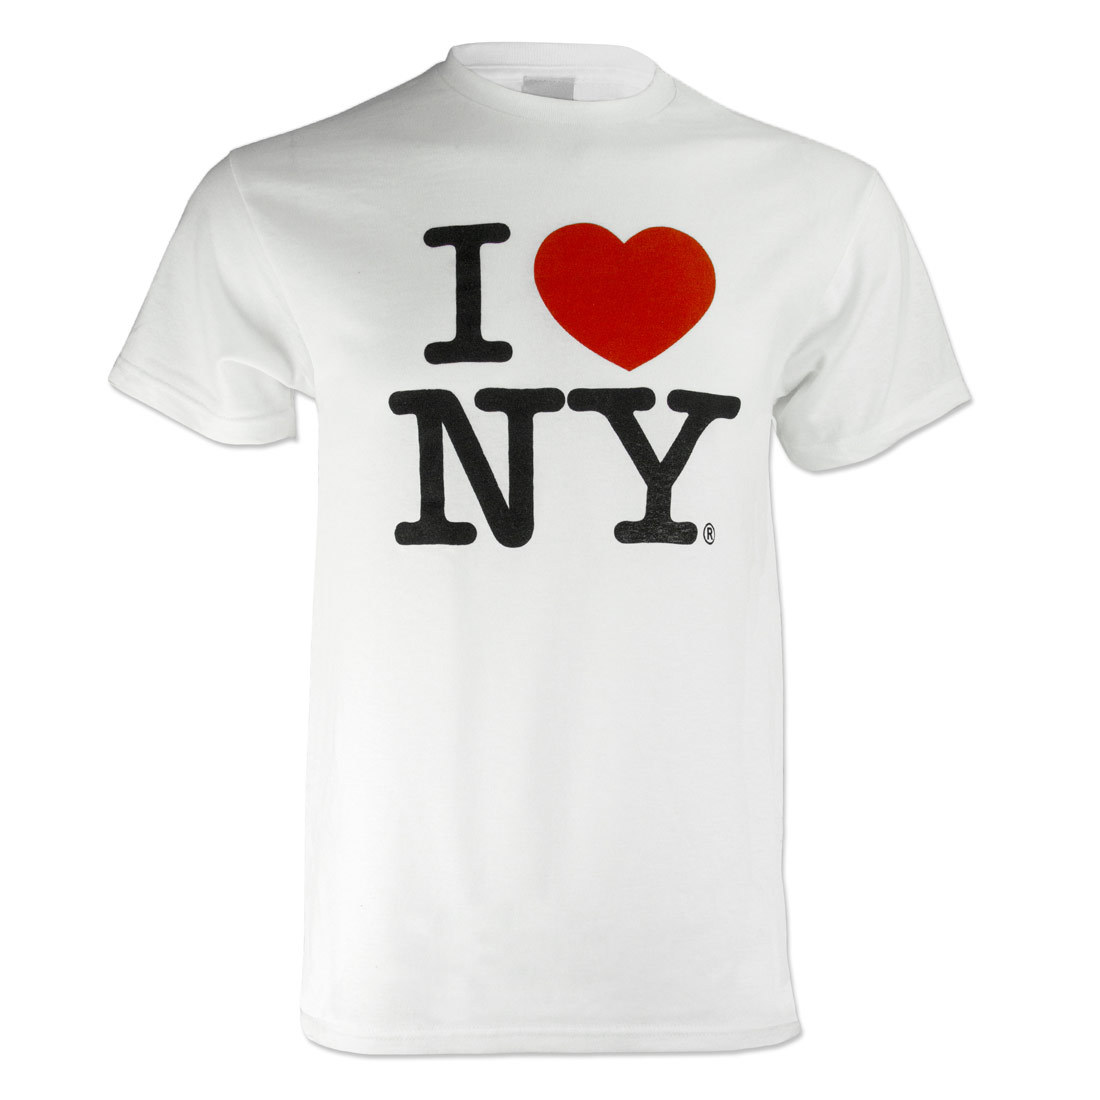 i-love-new-york